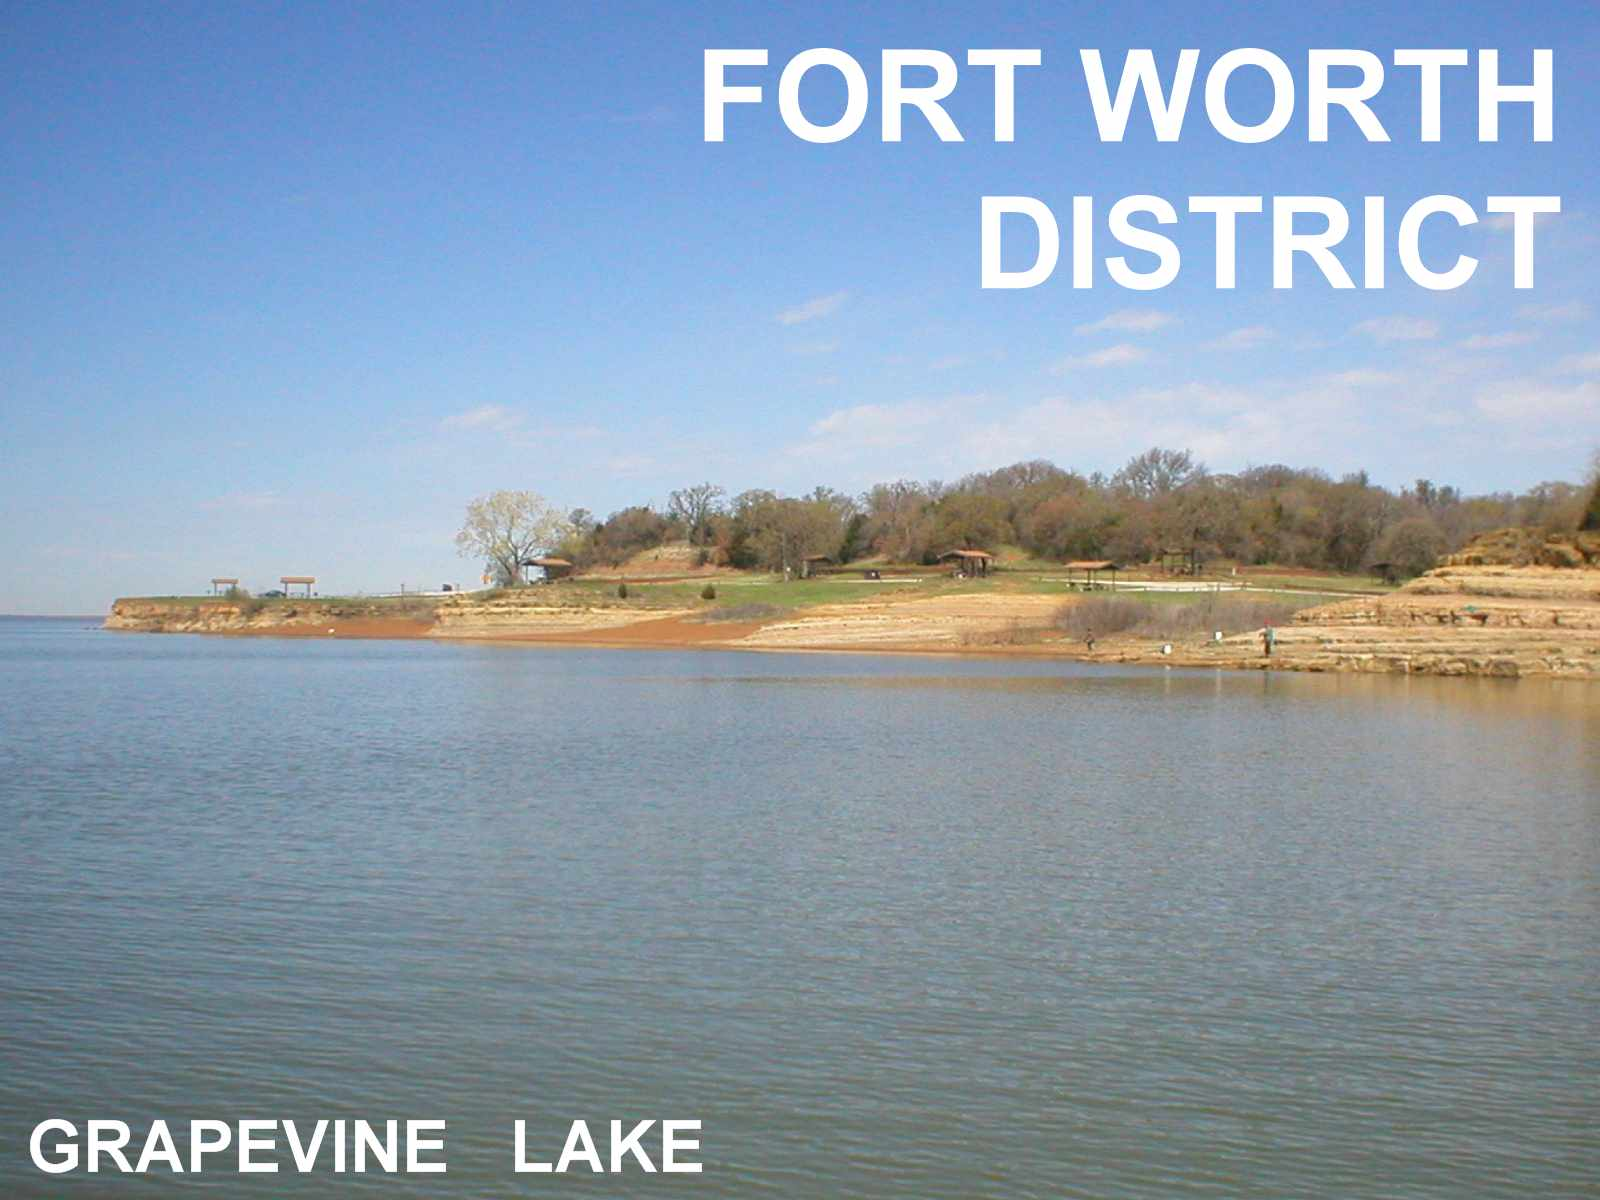 Army corps of engineers welcome to grapevine lake